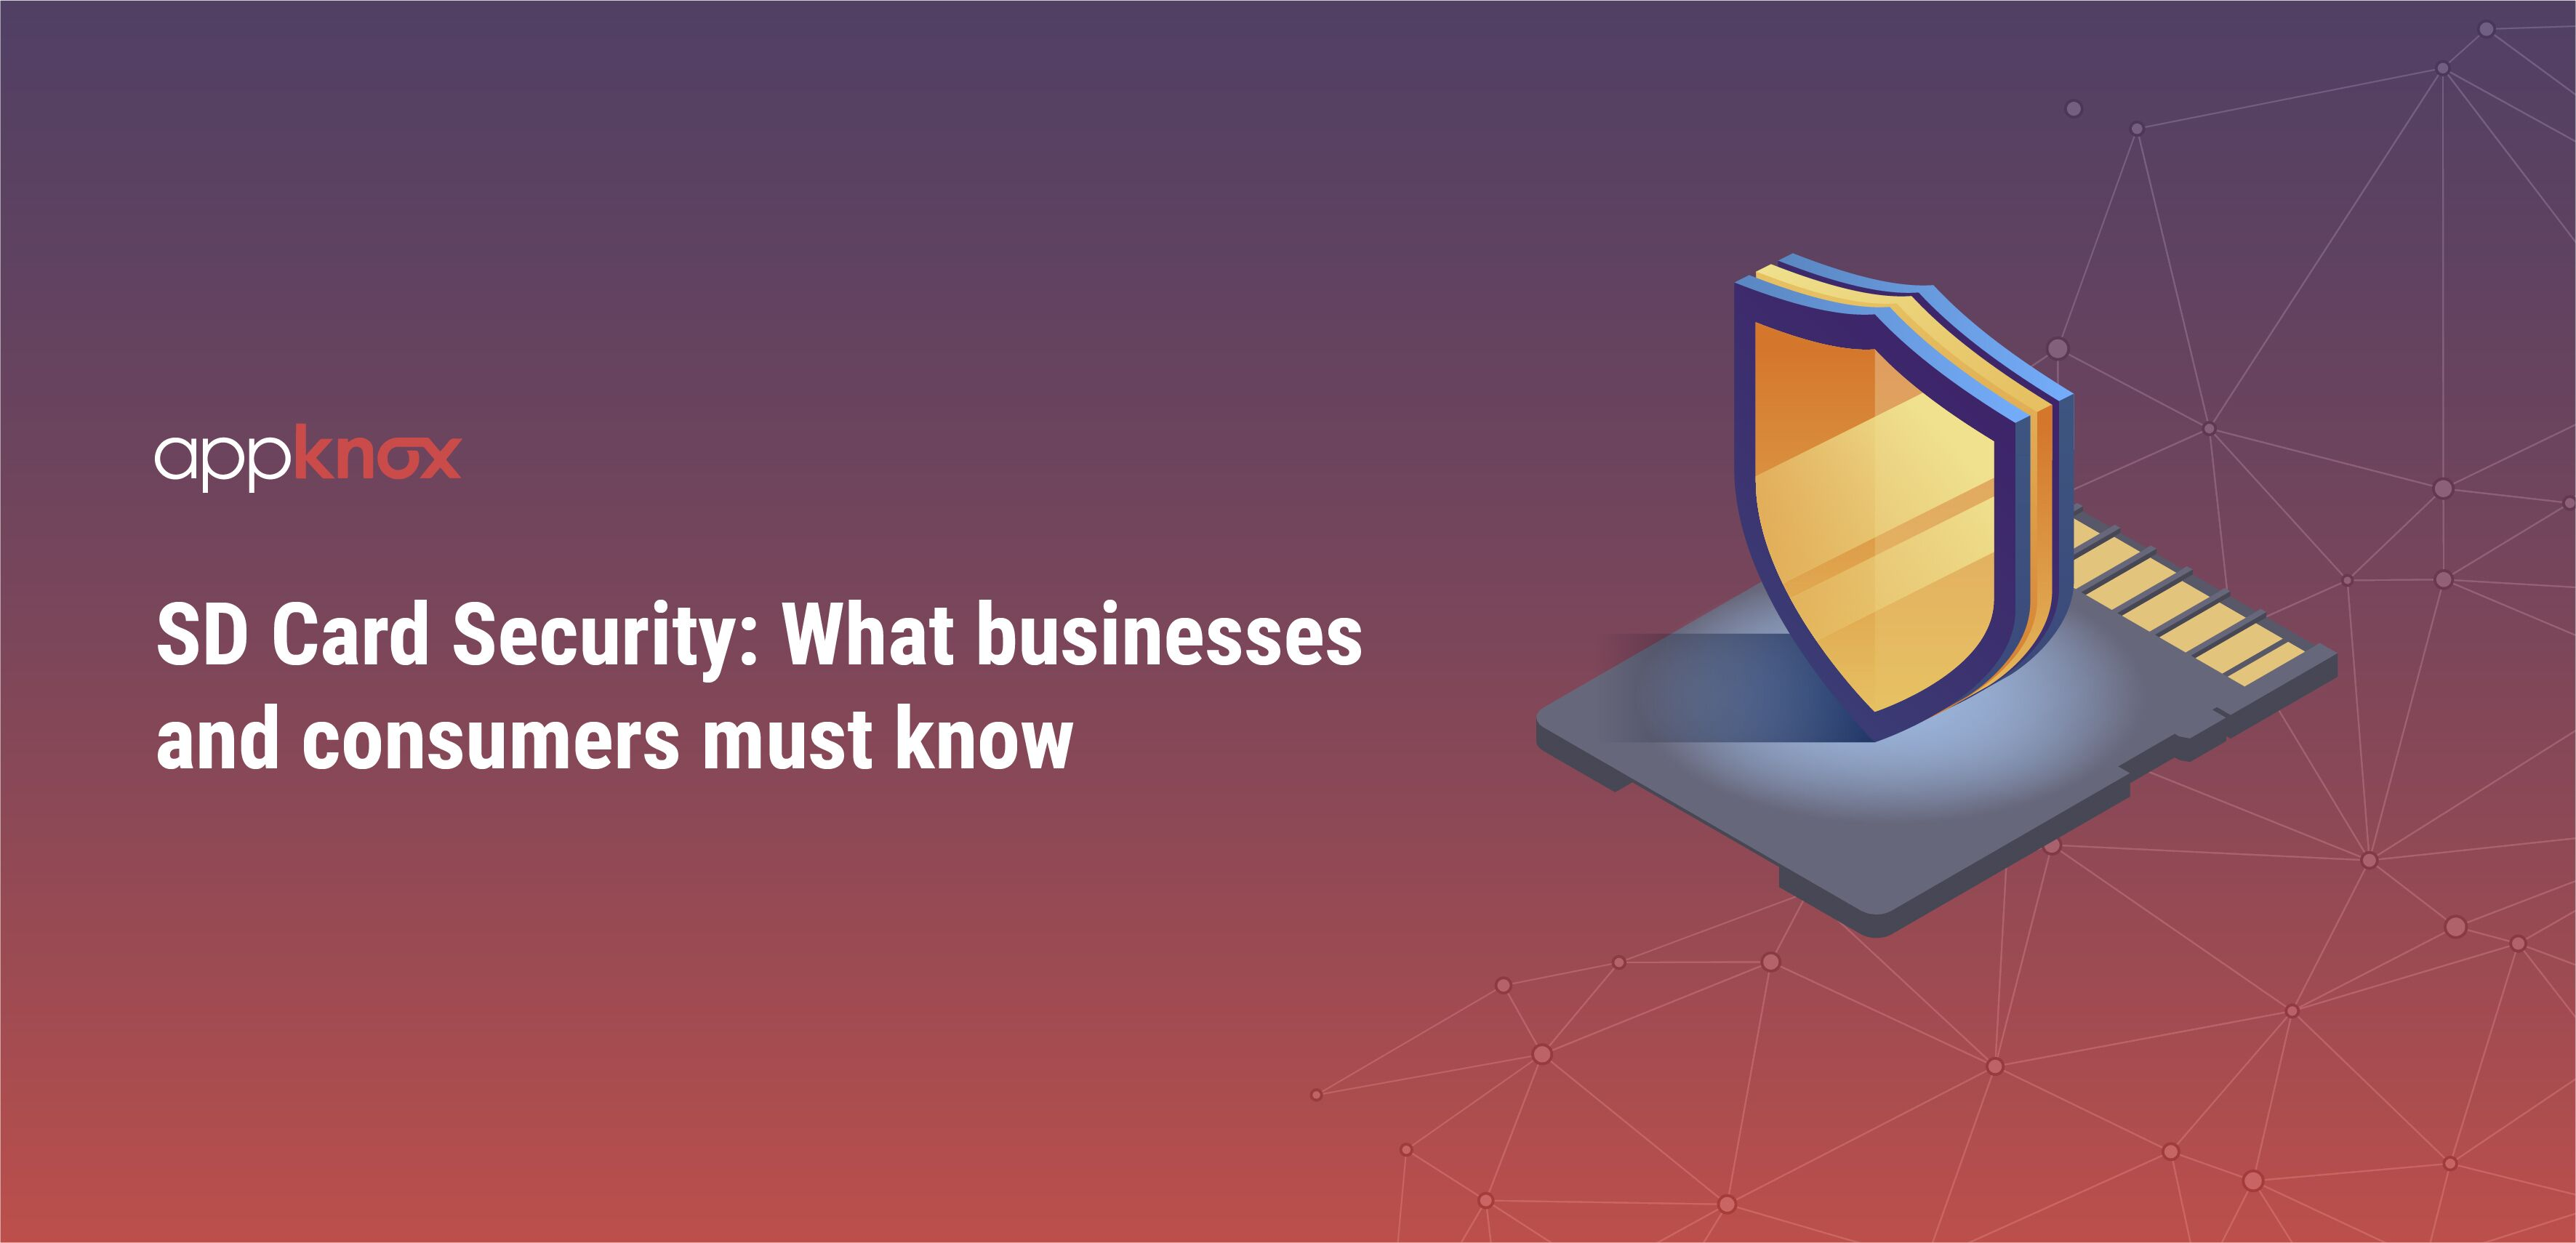 SD Card Security: What businesses and consumers must know